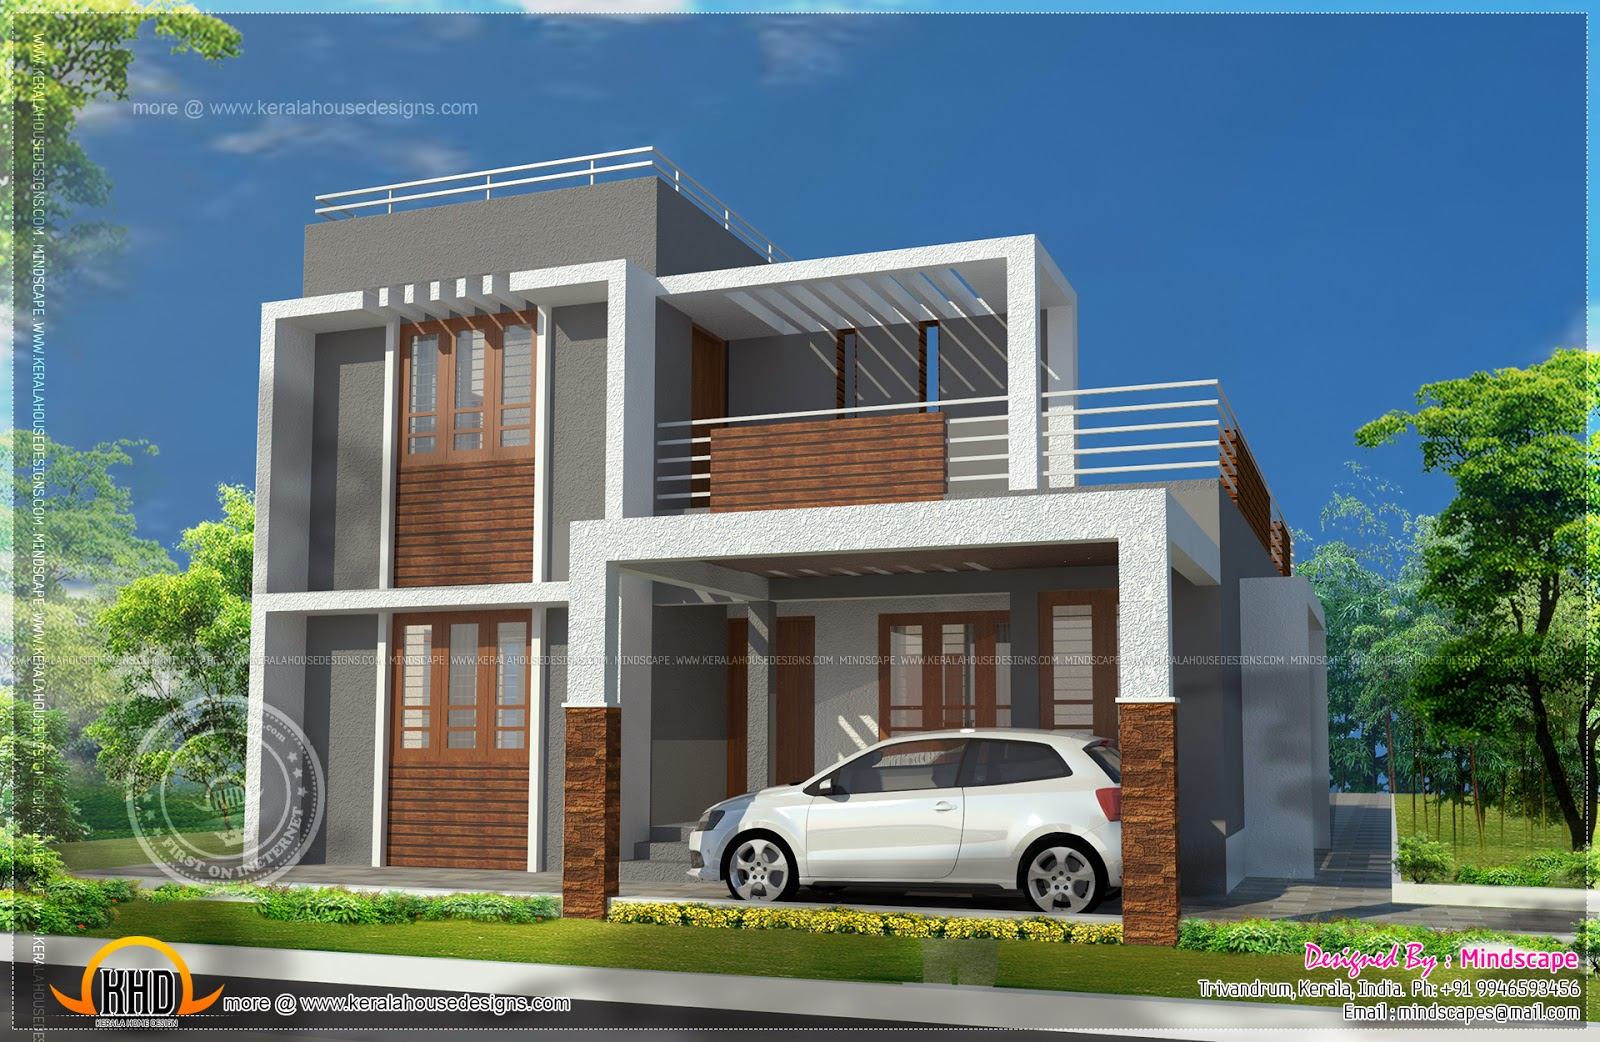 Small double storied contemporary house plan kerala home for Small house plans modern